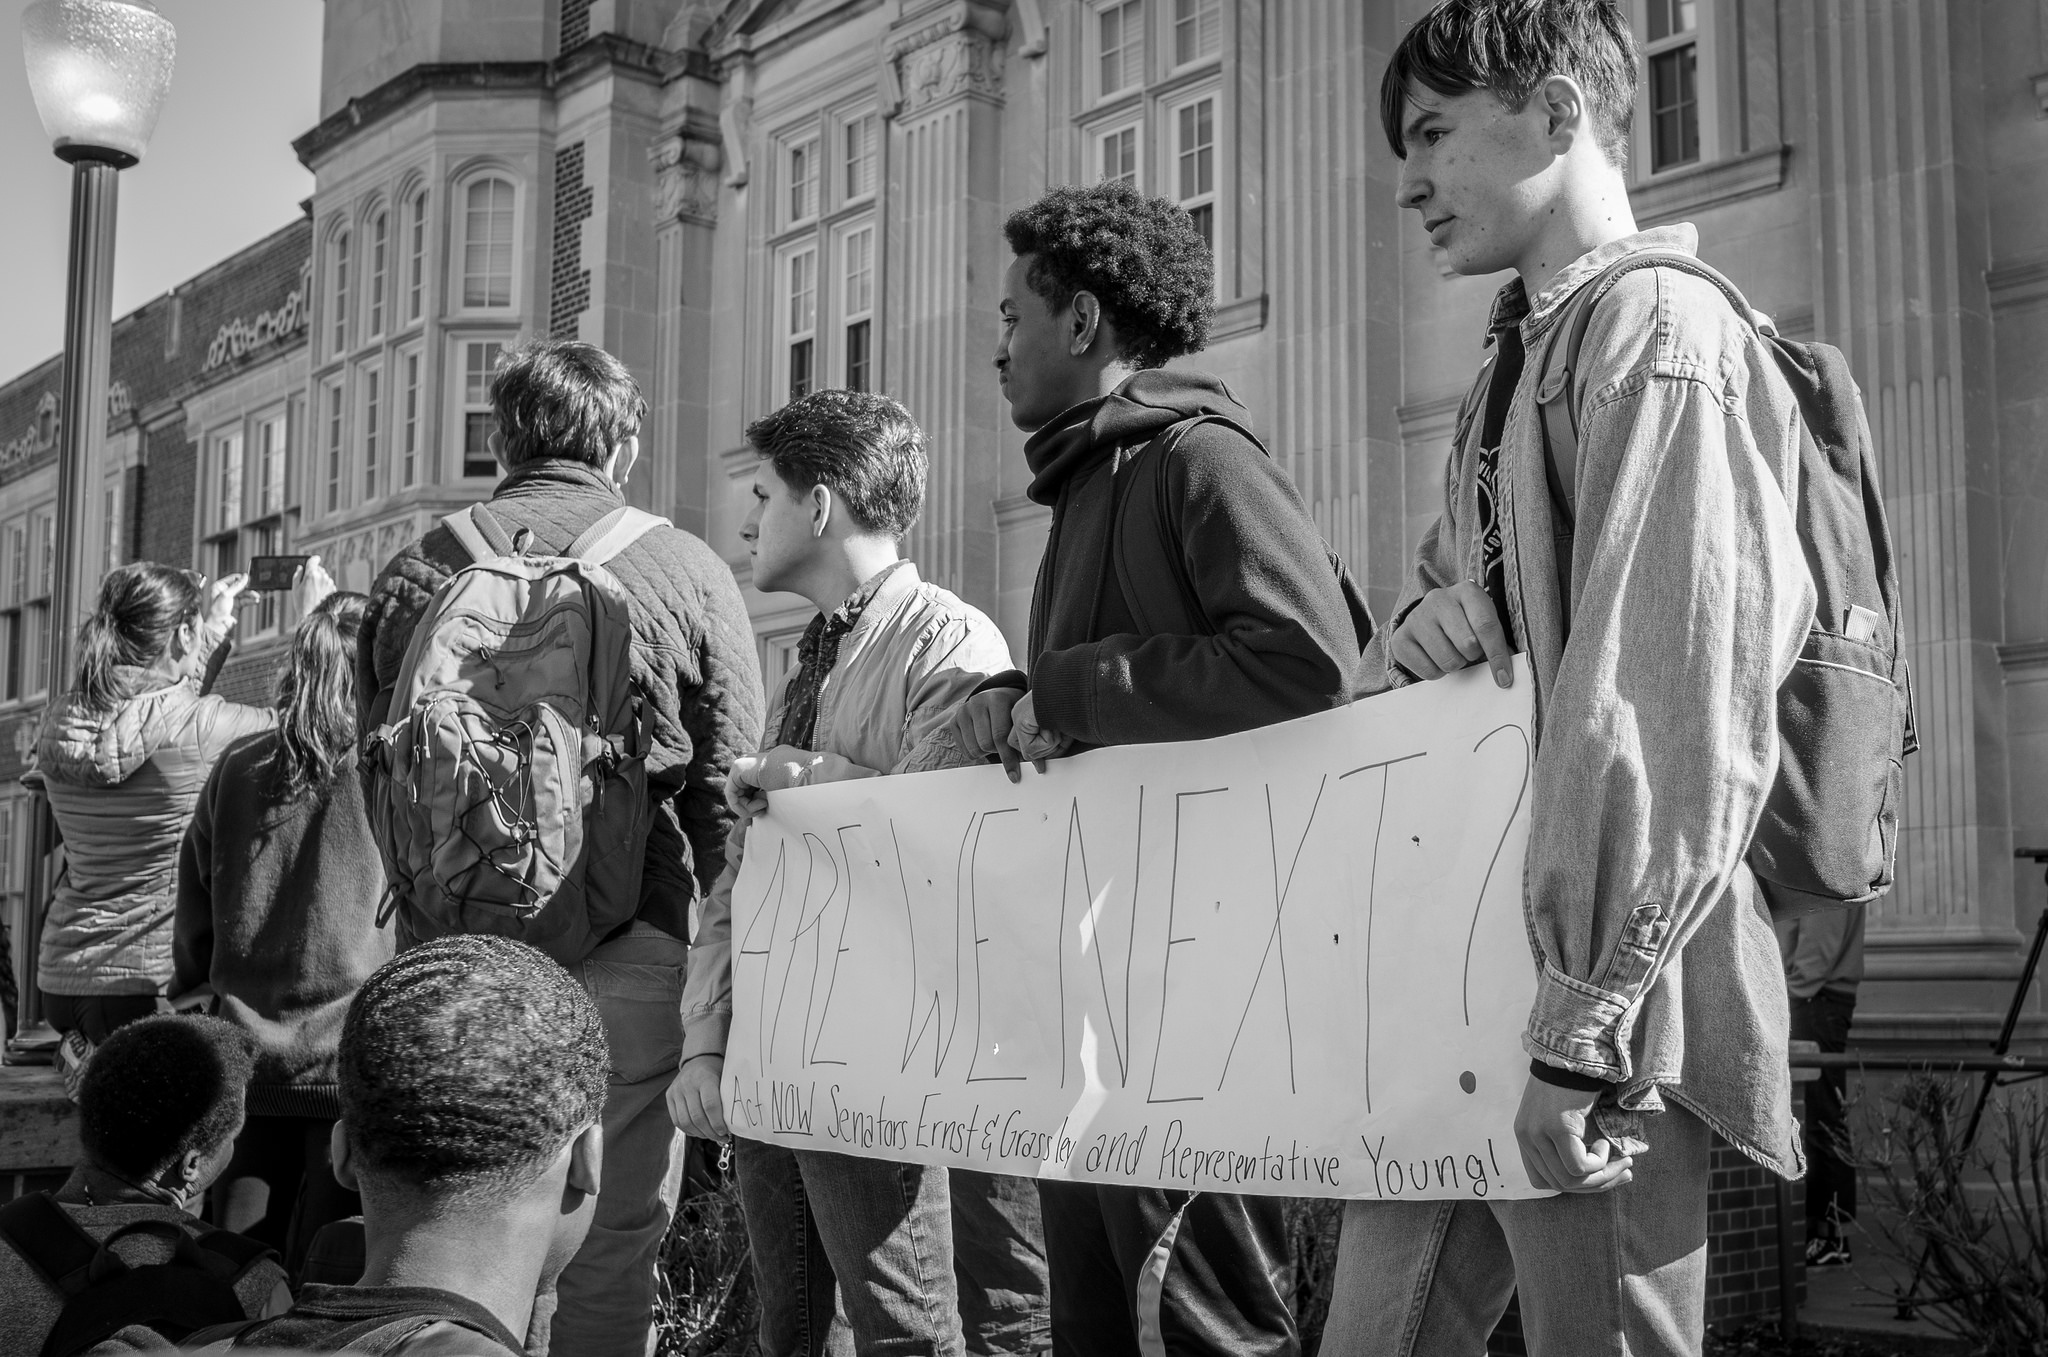 The Power Of Children Protesting From The Civil Rights